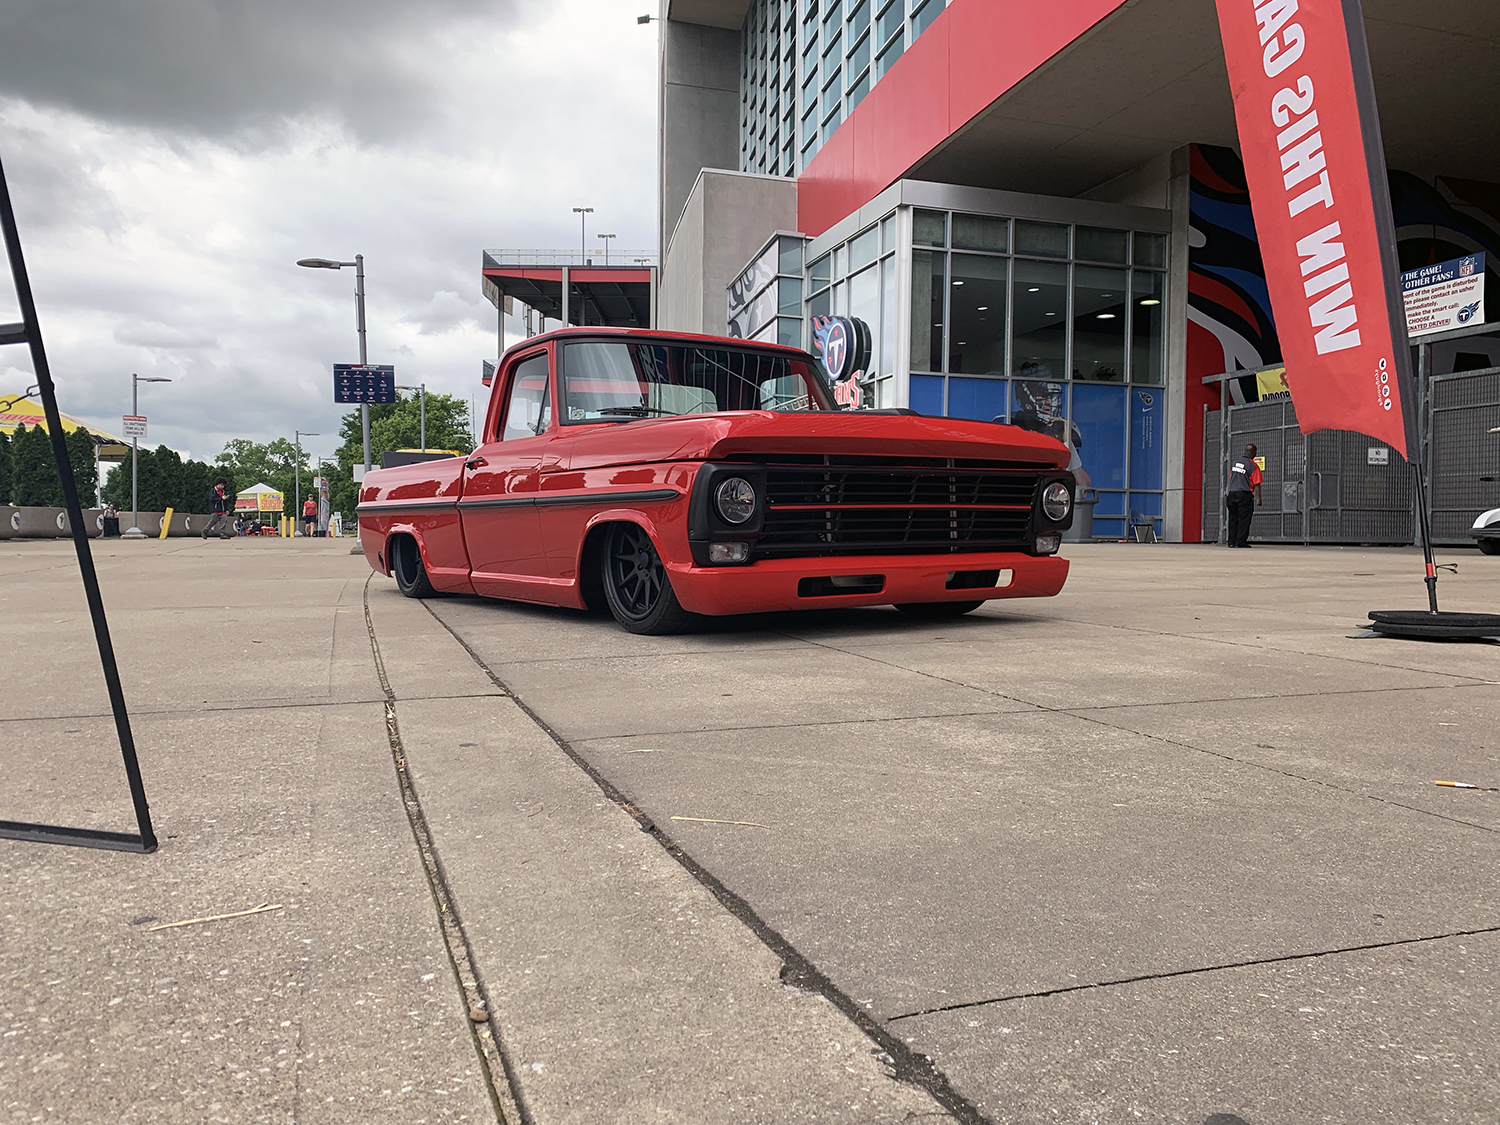 scotts-hotrods-good-guys-nashville-2019-1